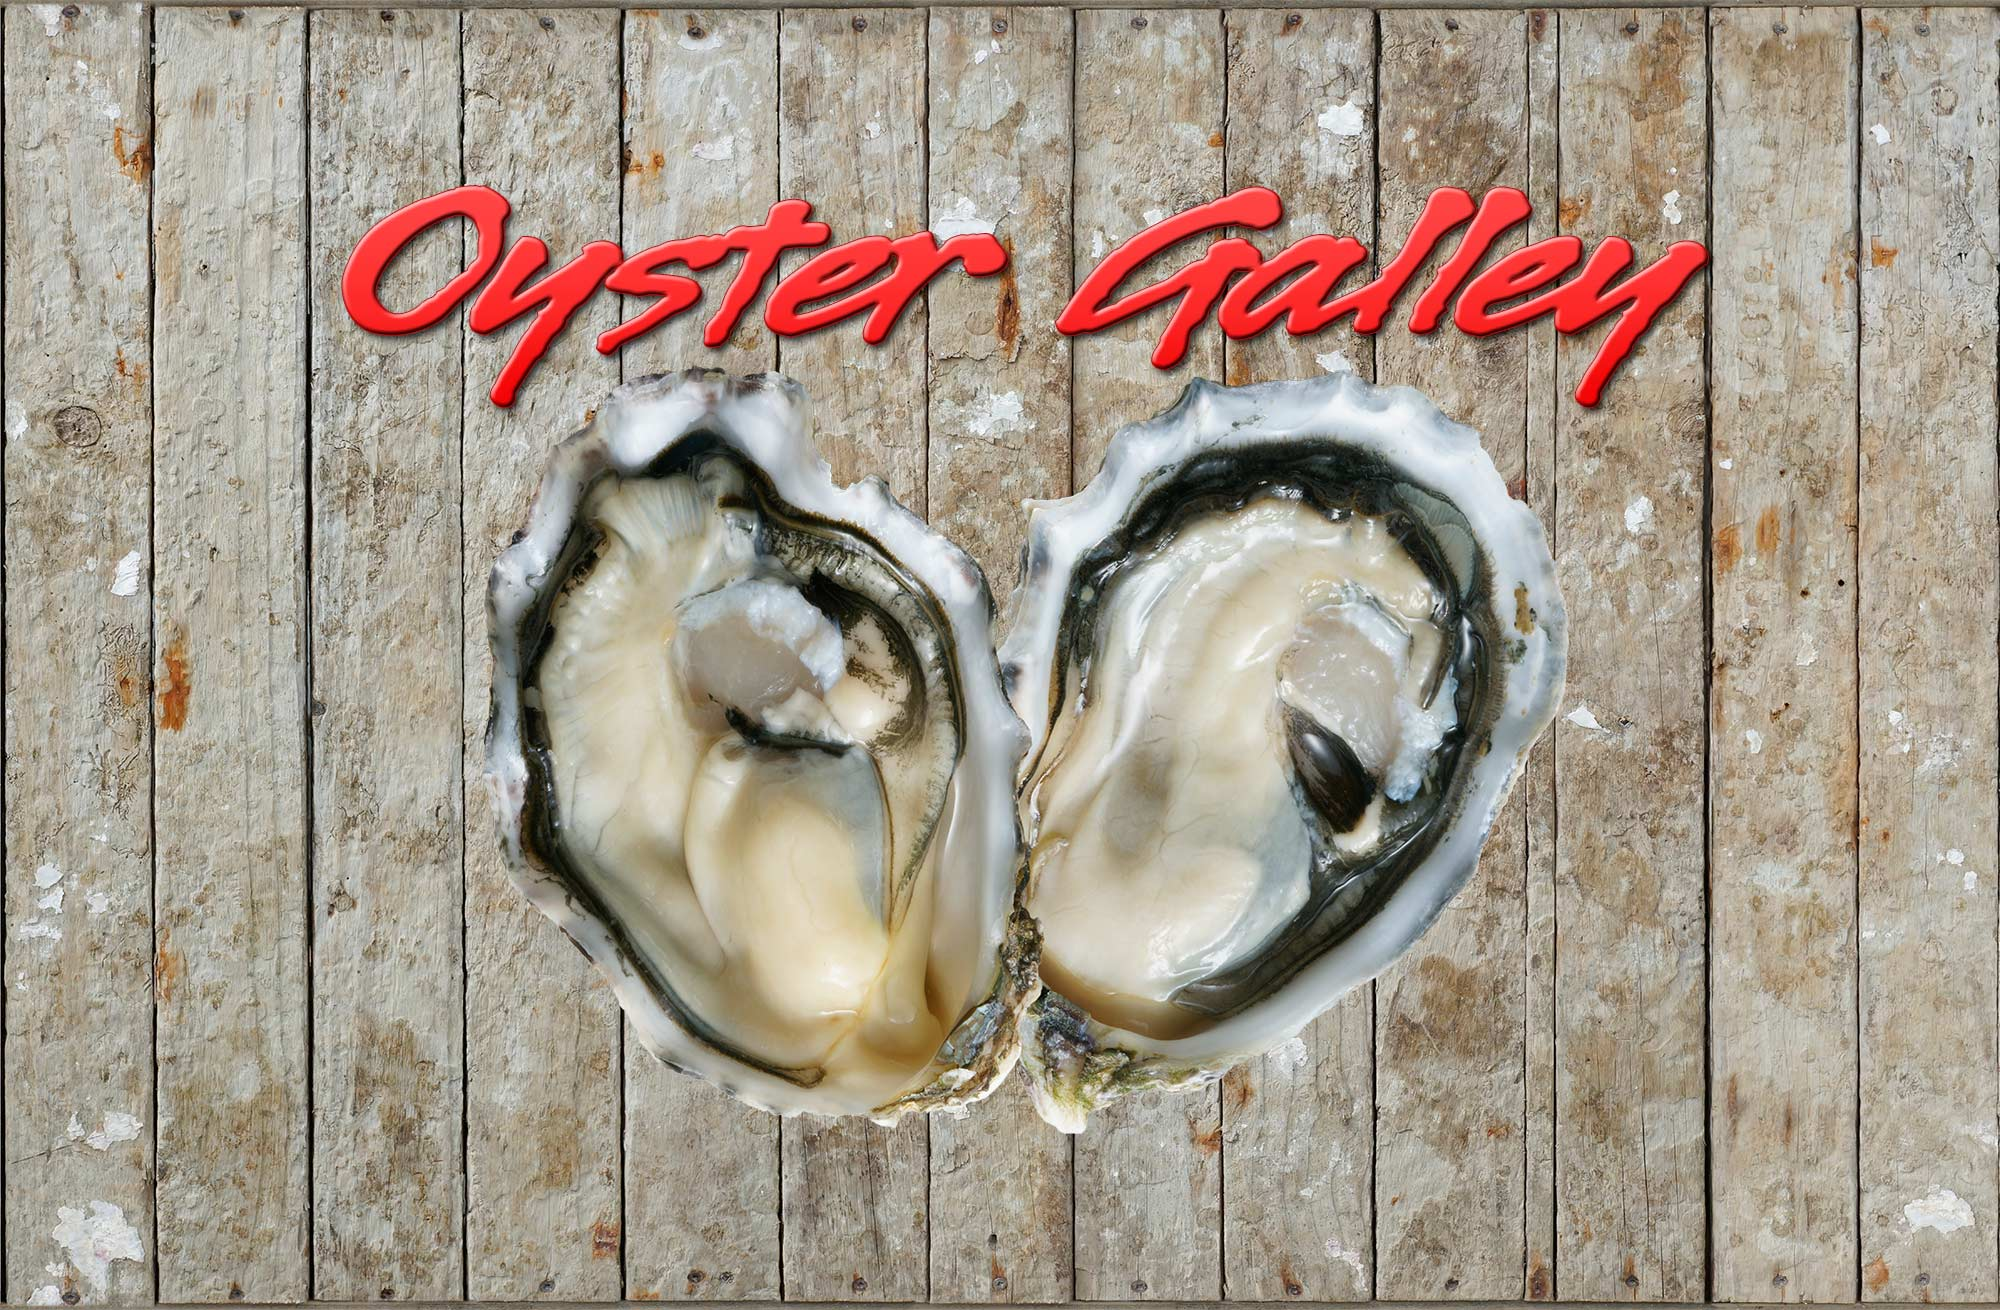 Oyster Galley